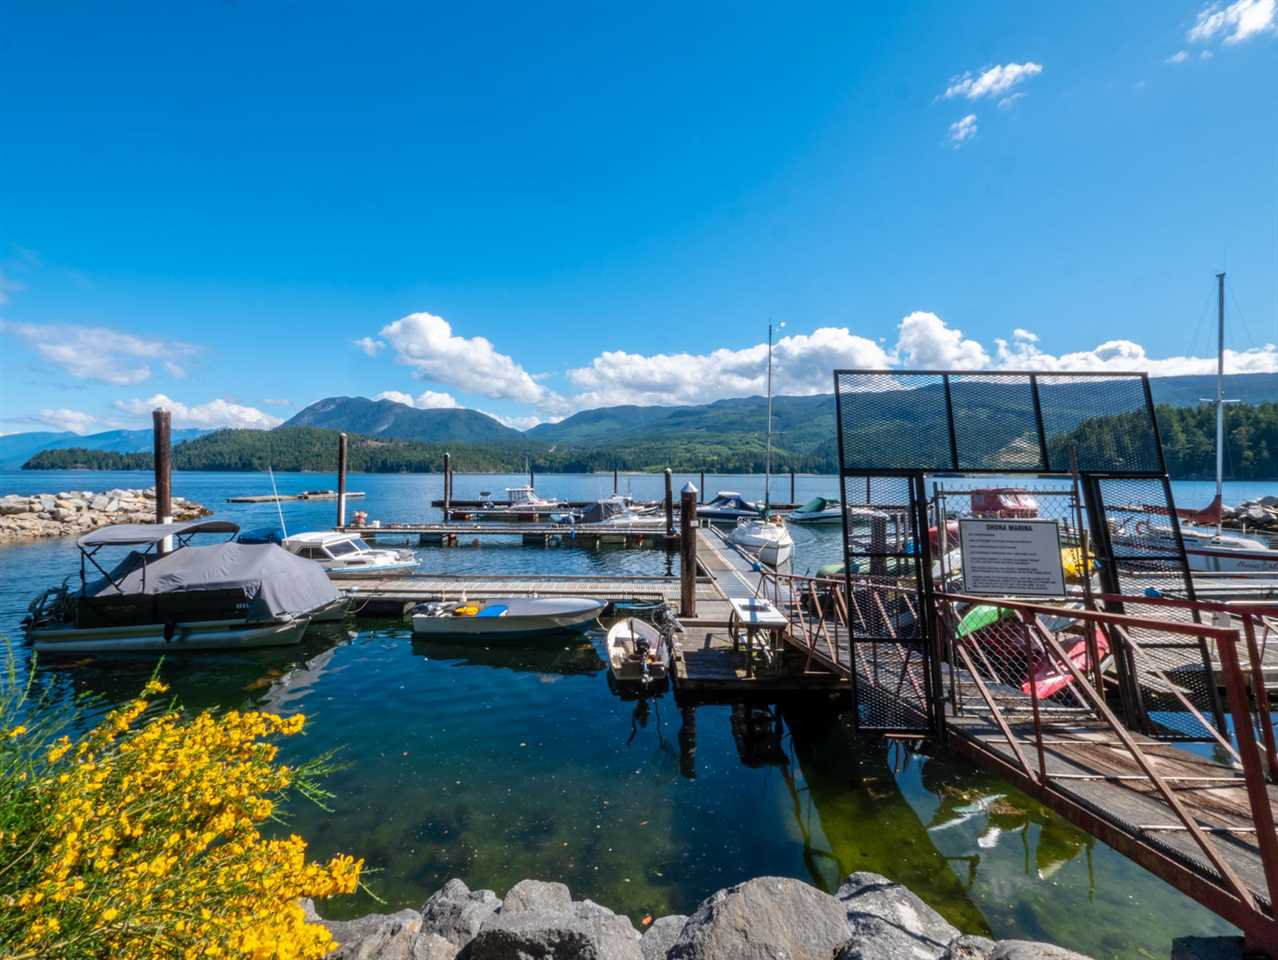 """Photo 15: Photos: 6148 POISE ISLAND Drive in Sechelt: Sechelt District House for sale in """"POISE ISLAND"""" (Sunshine Coast)  : MLS®# R2426642"""